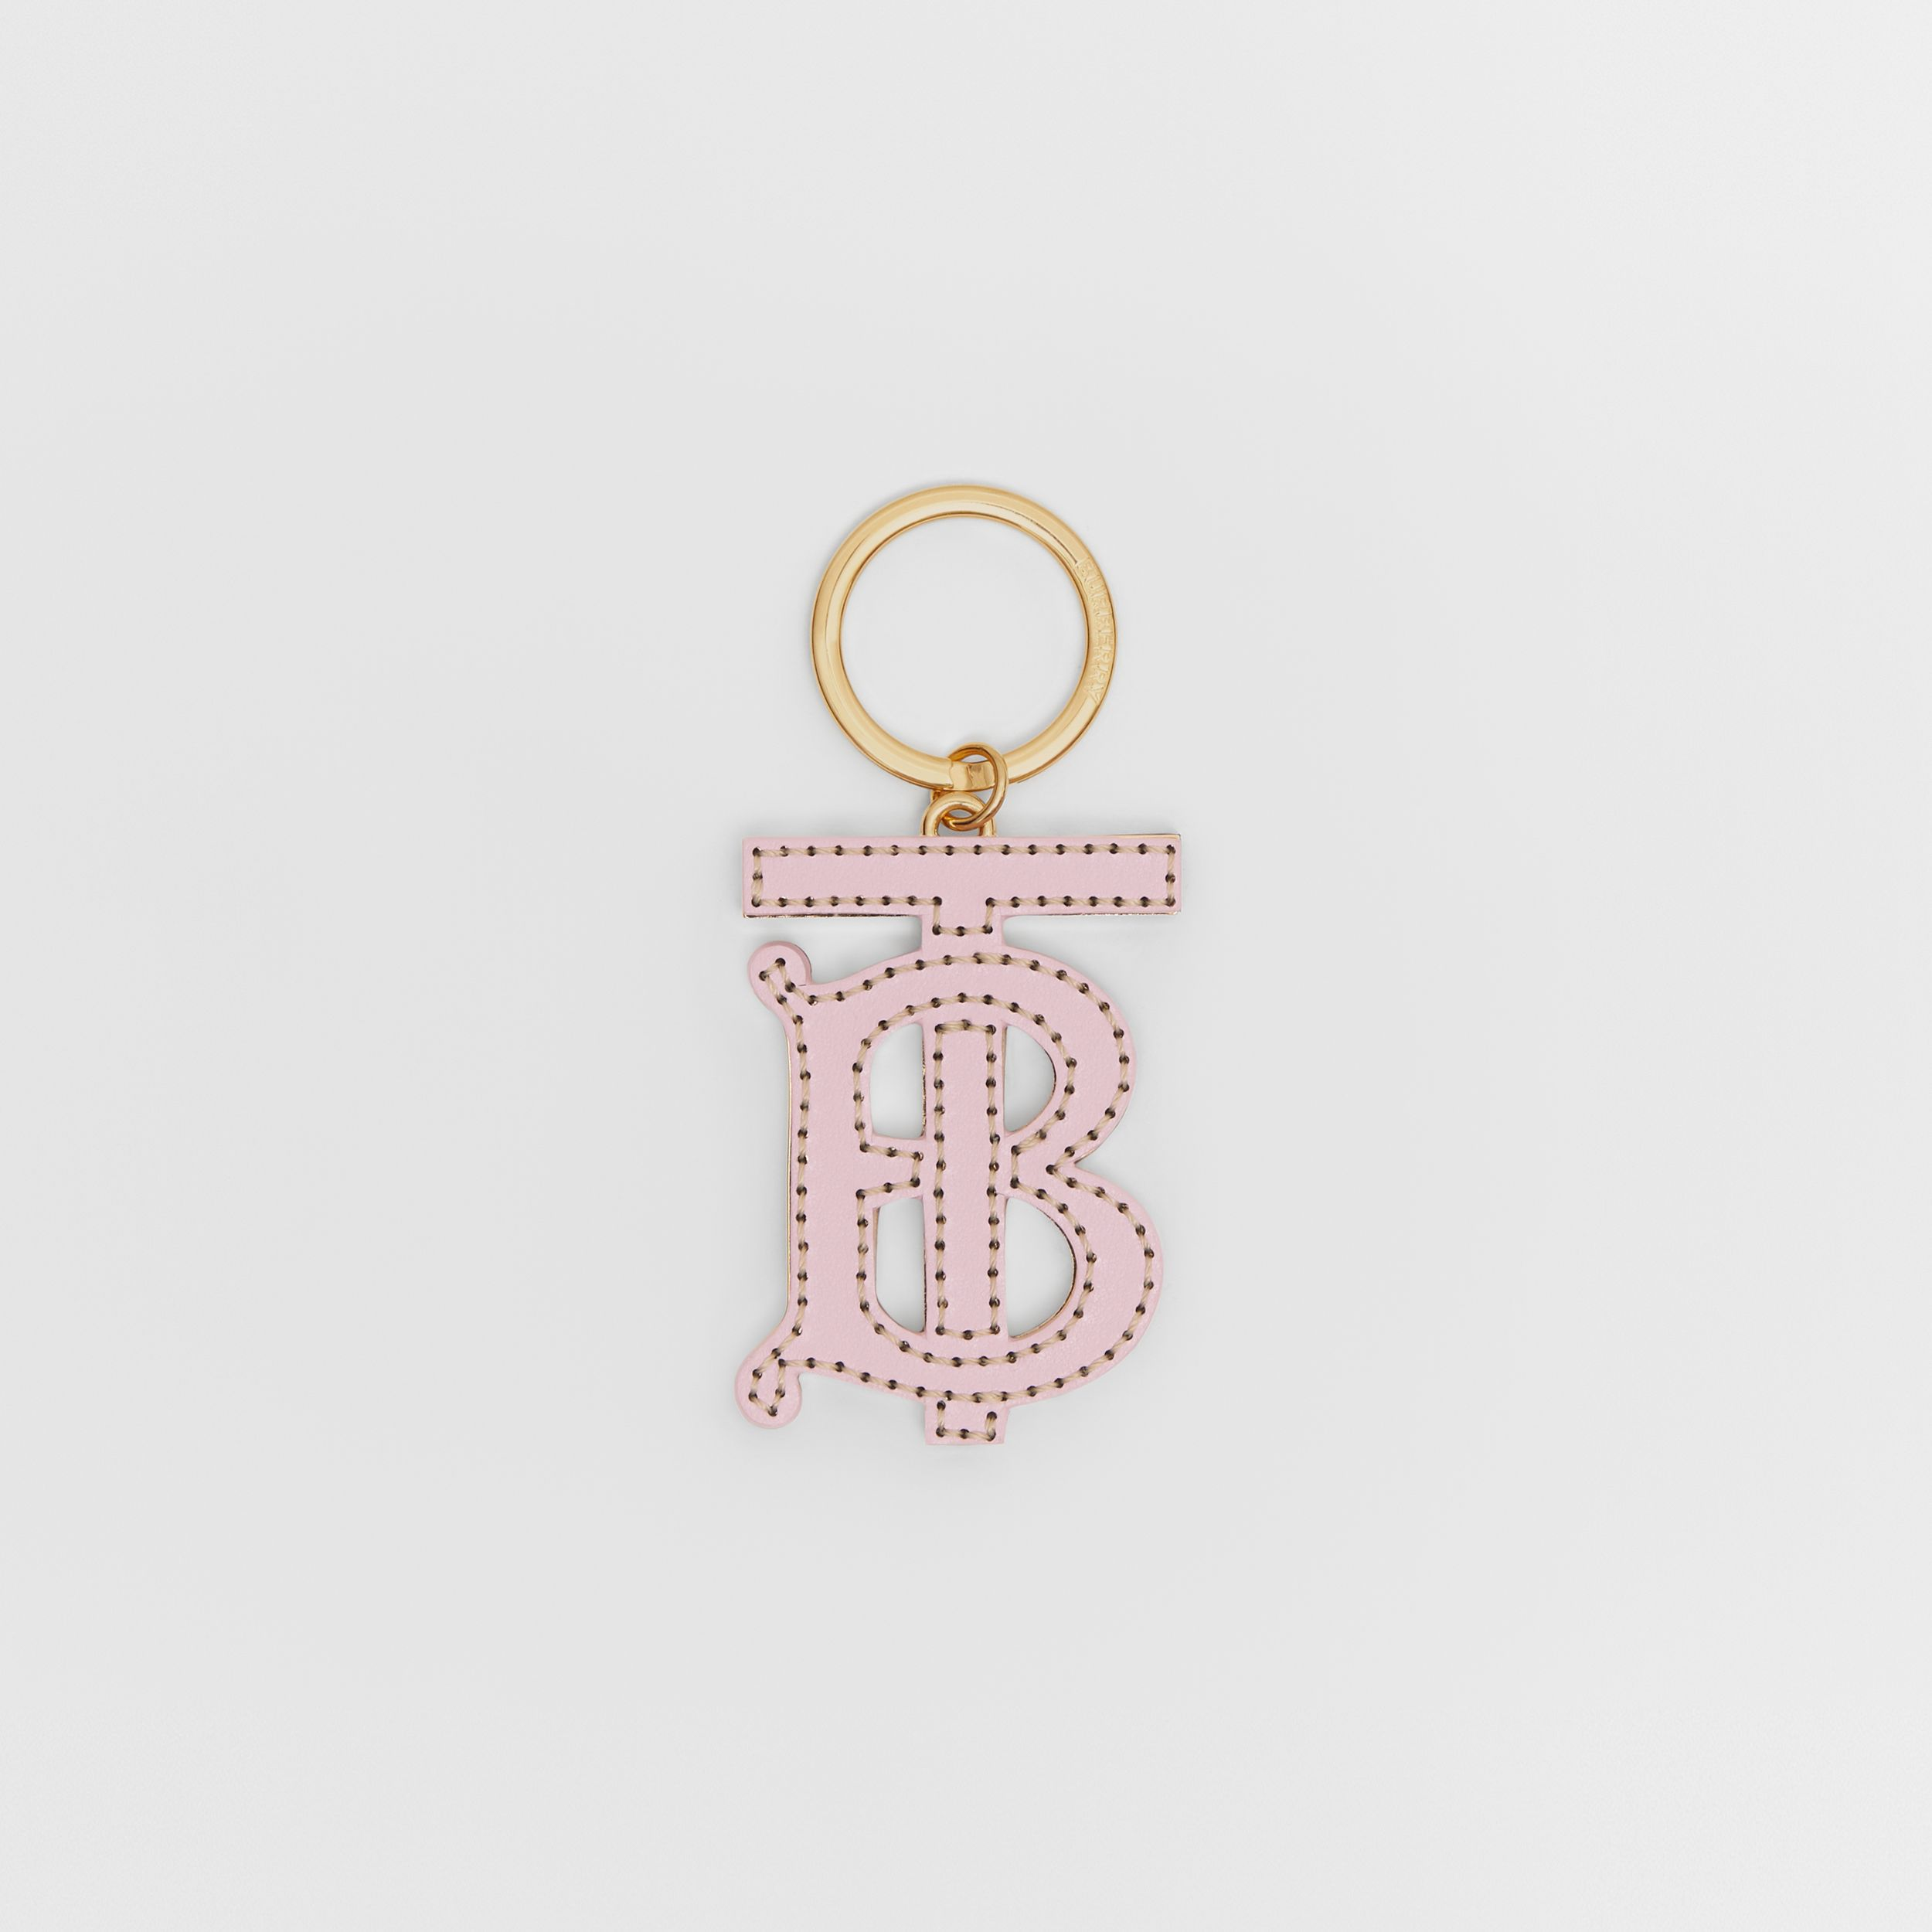 Monogram Motif Two-tone Leather Key Charm in Pink / Honey - Women | Burberry - 1